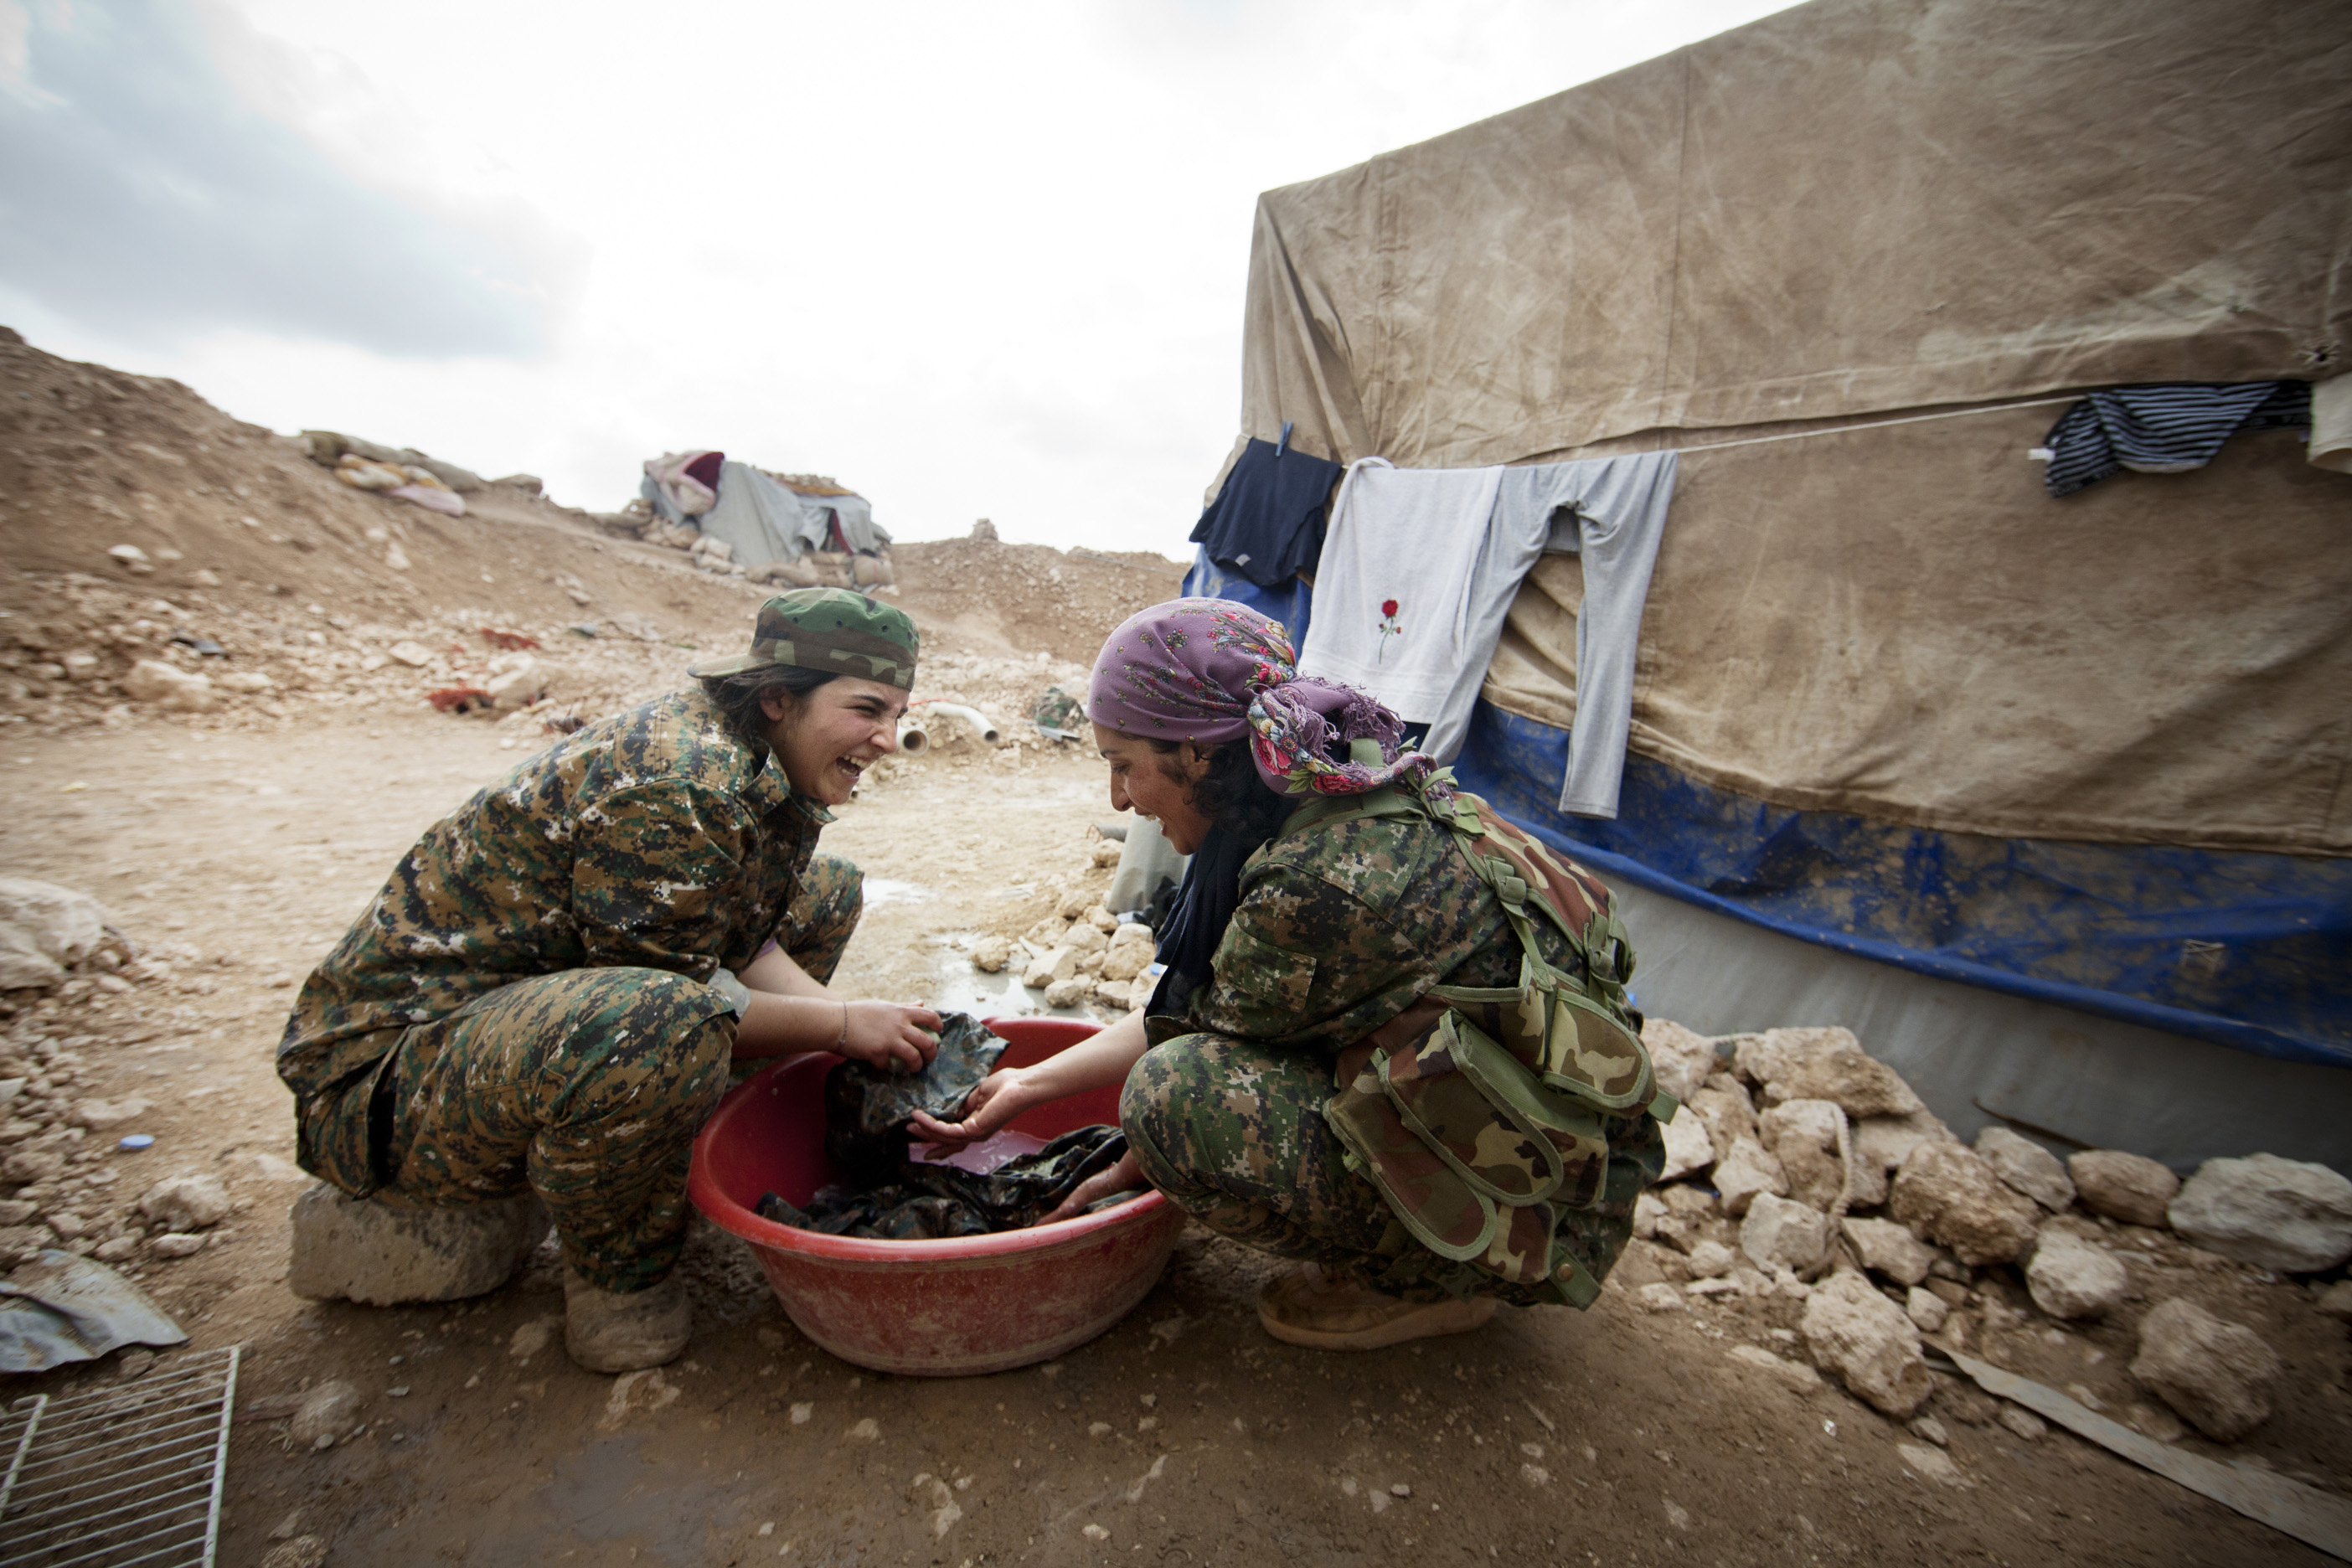 SINJAR, KURDISTAN, IRAQ- FEBRUARY, 2016: Norouz (21) (foulard rose) faist sa lessive. Leur poste se trouve à 1 km seulment des positions enemies de Daech. .(picture by Veronique de Viguerie/ Reportage by Getty Images )